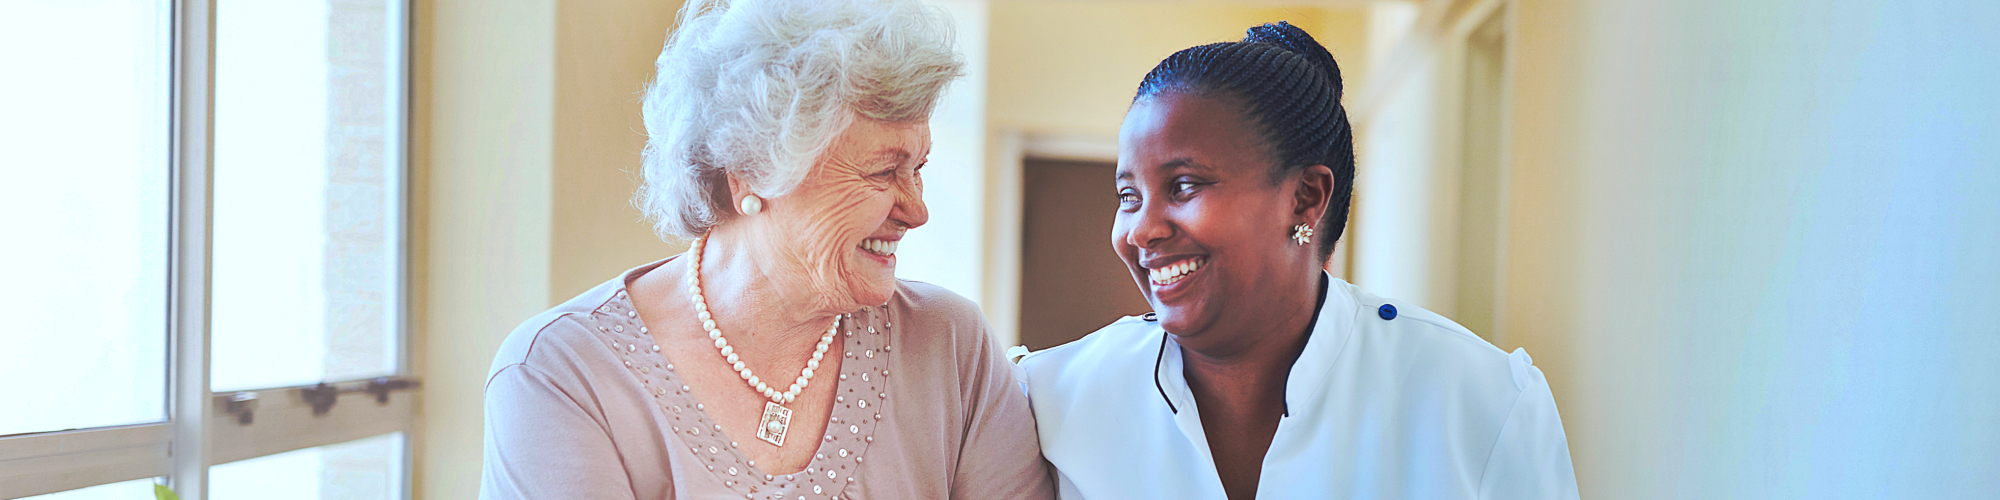 senior woman smiling with nurse